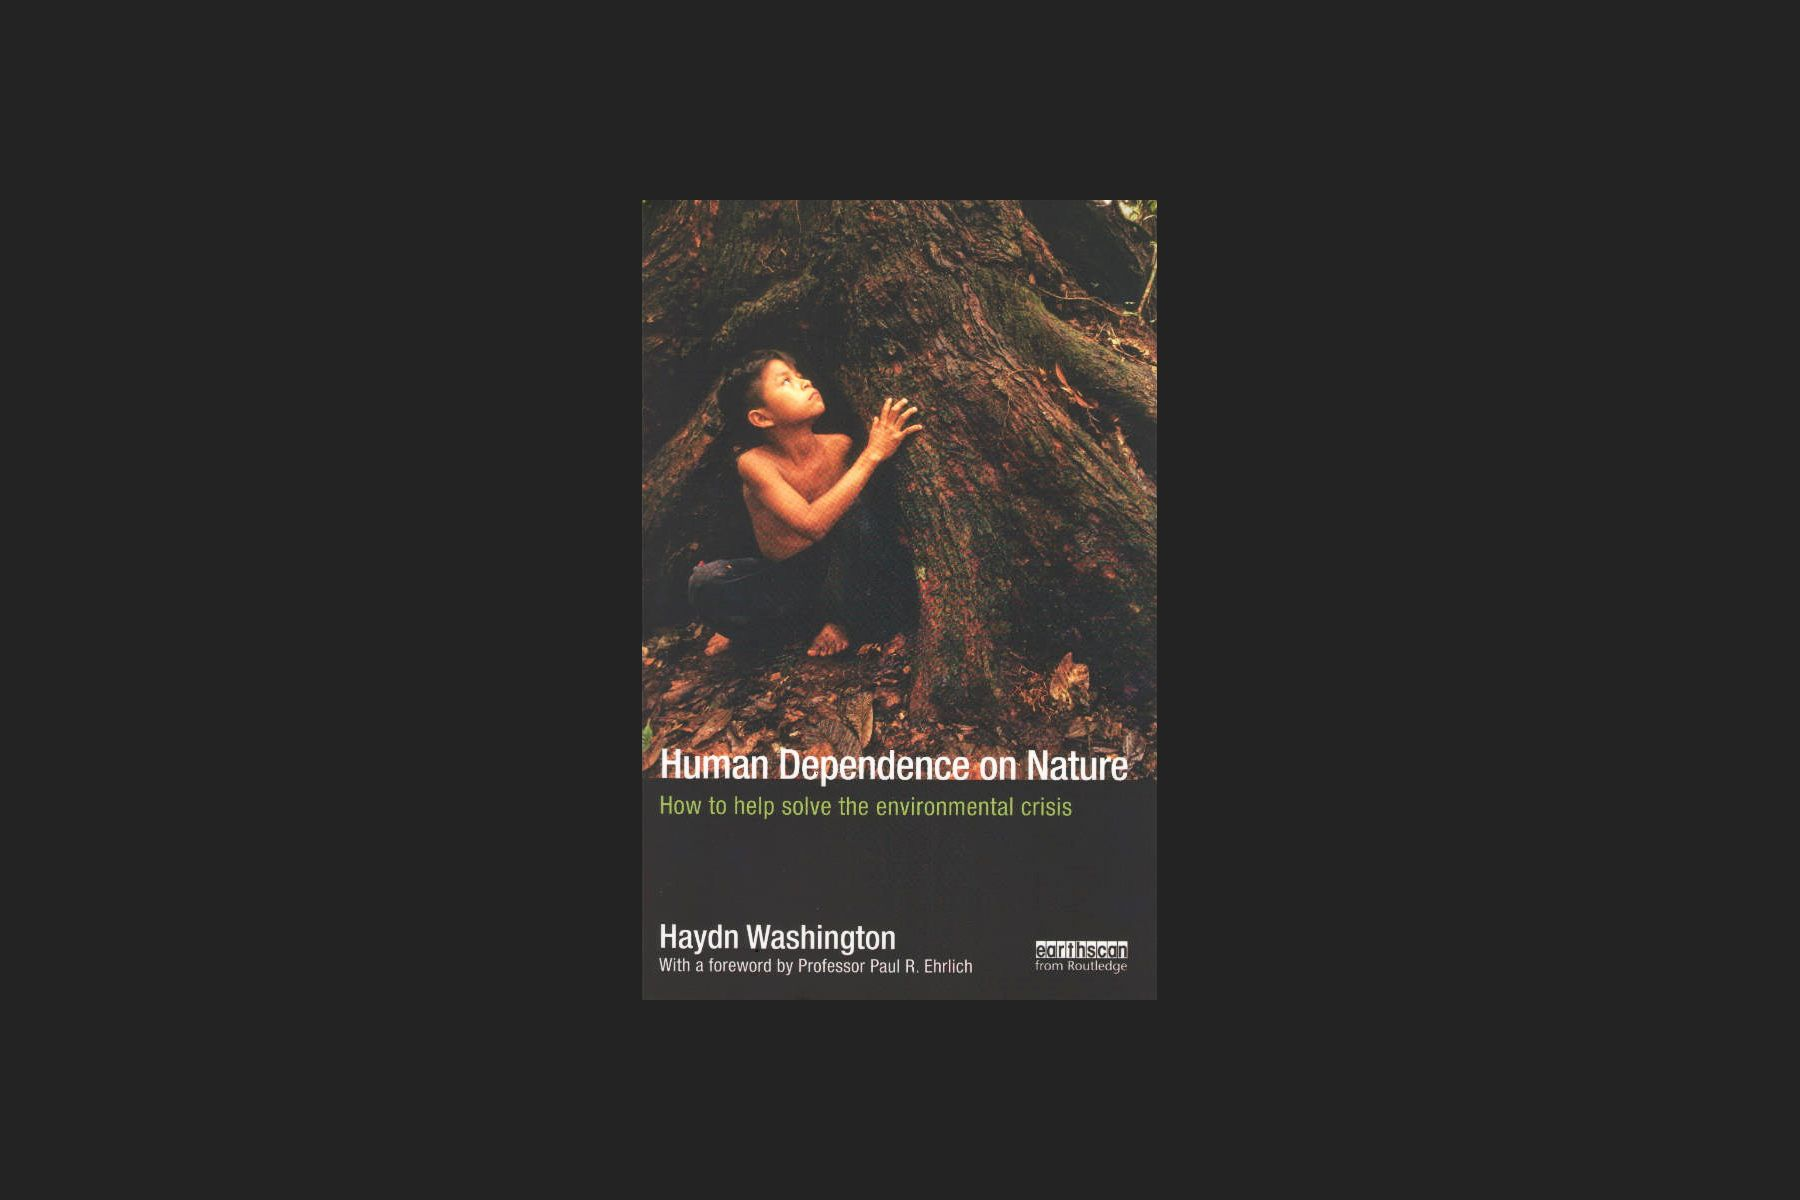 human dependence on nature cover on portfolio slide.jpg